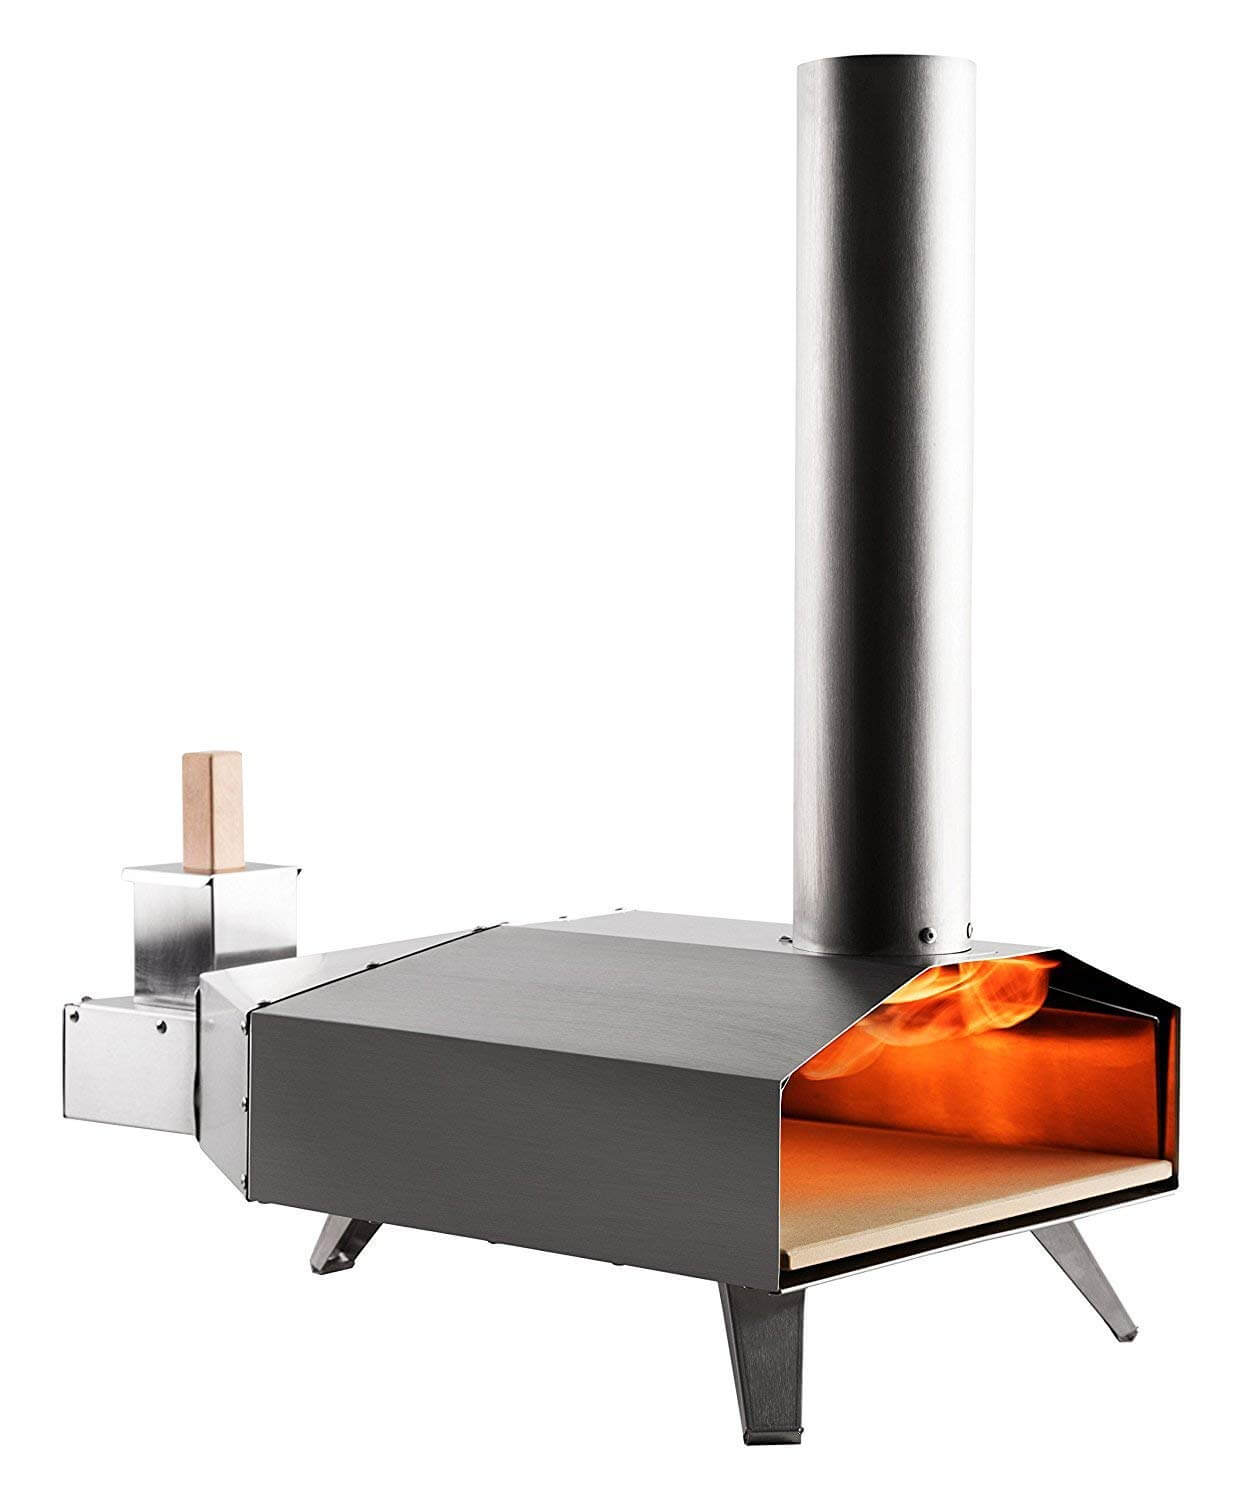 Uuni 3 Portable Wood Pellet Pizza Oven w Stone and Peel, Stainless Steel